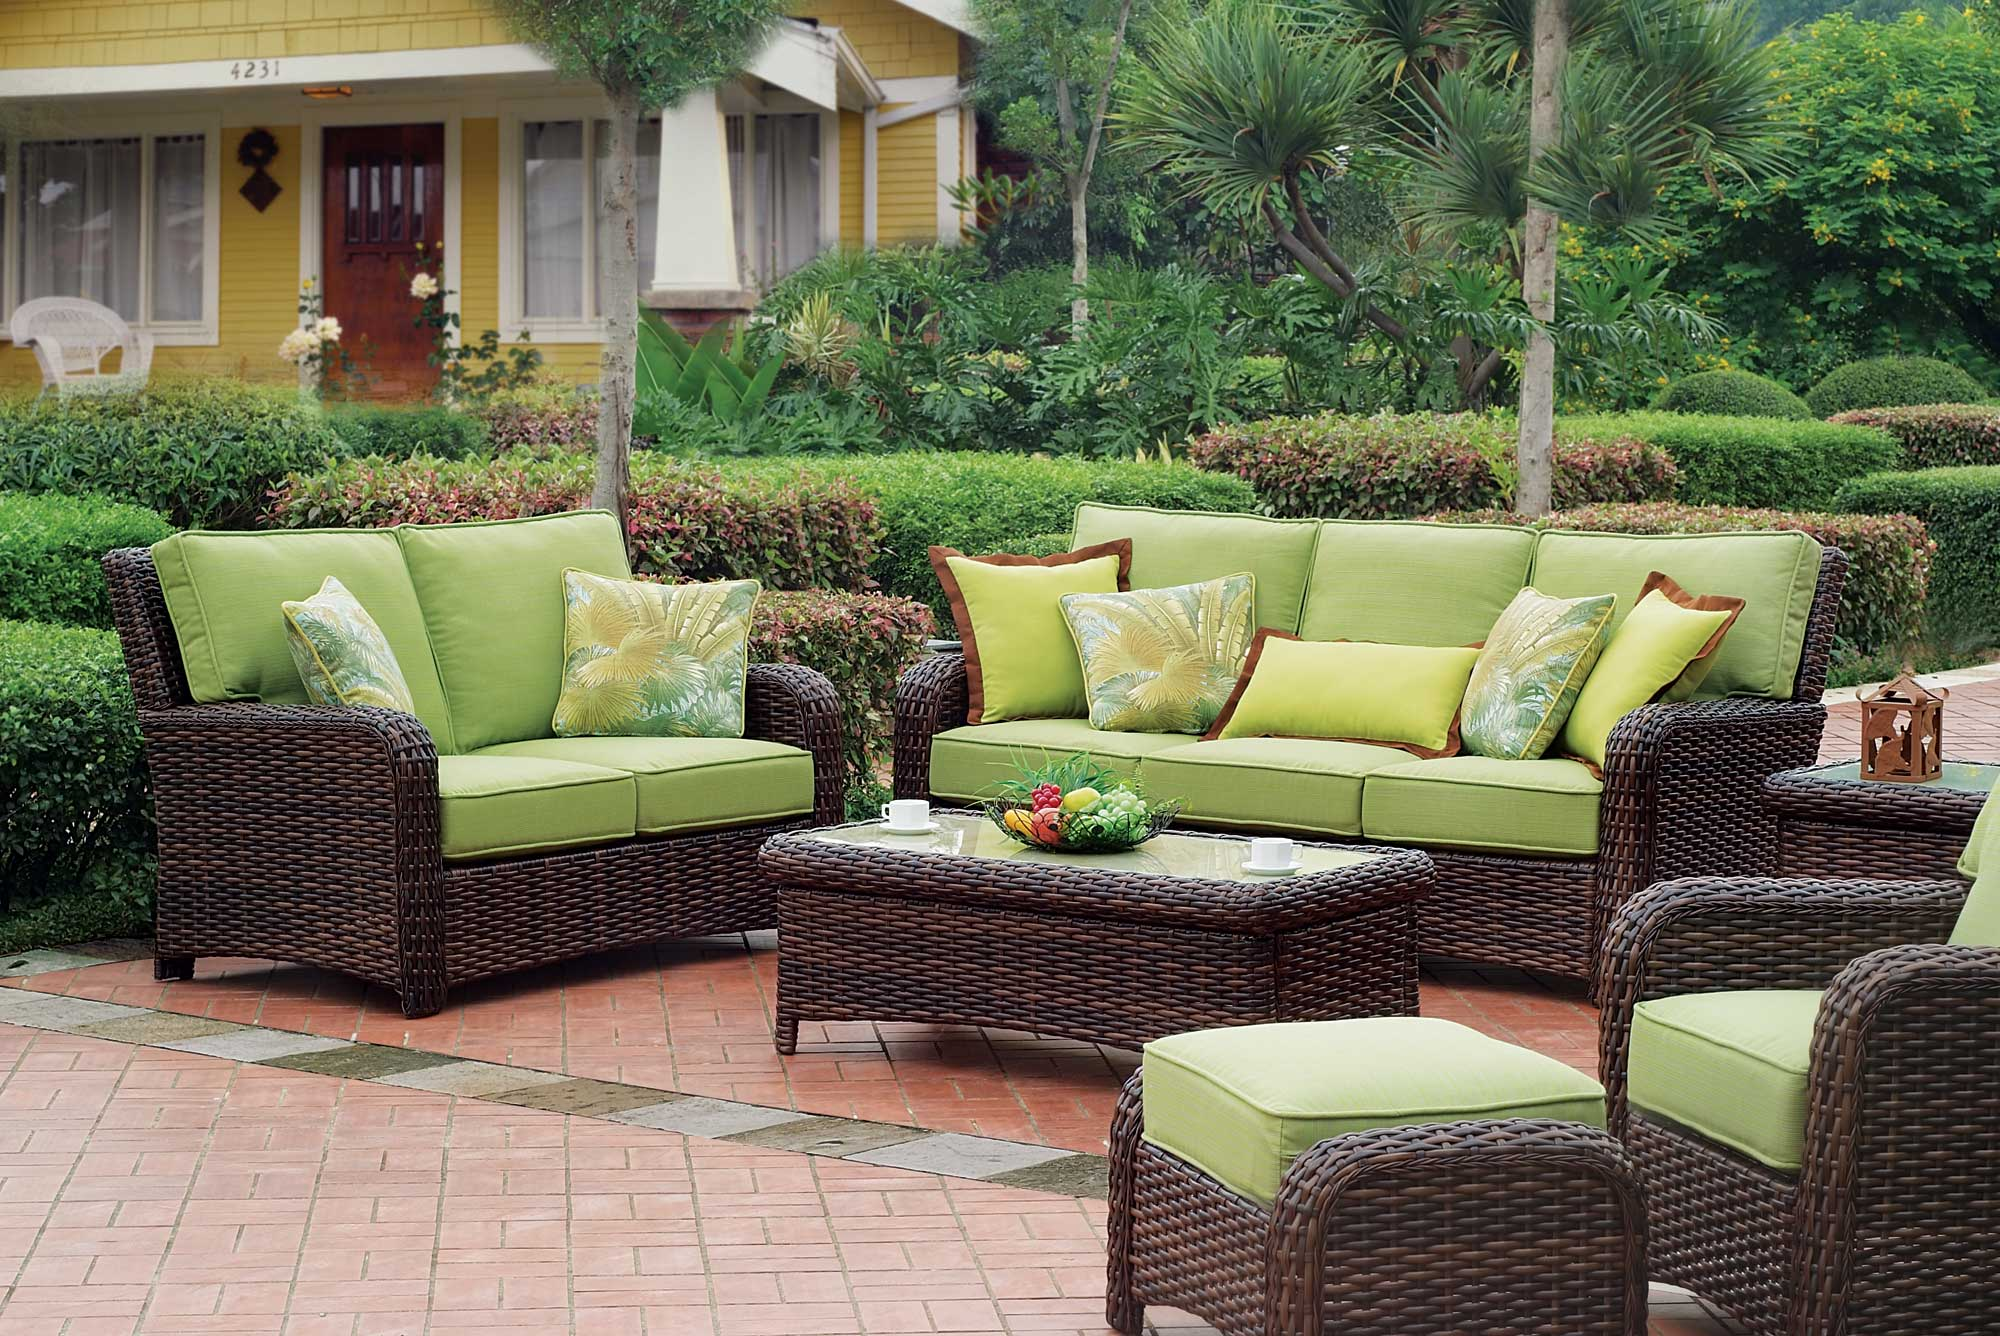 Outdoor Living Tips for Keeping Your Rattan Furniture